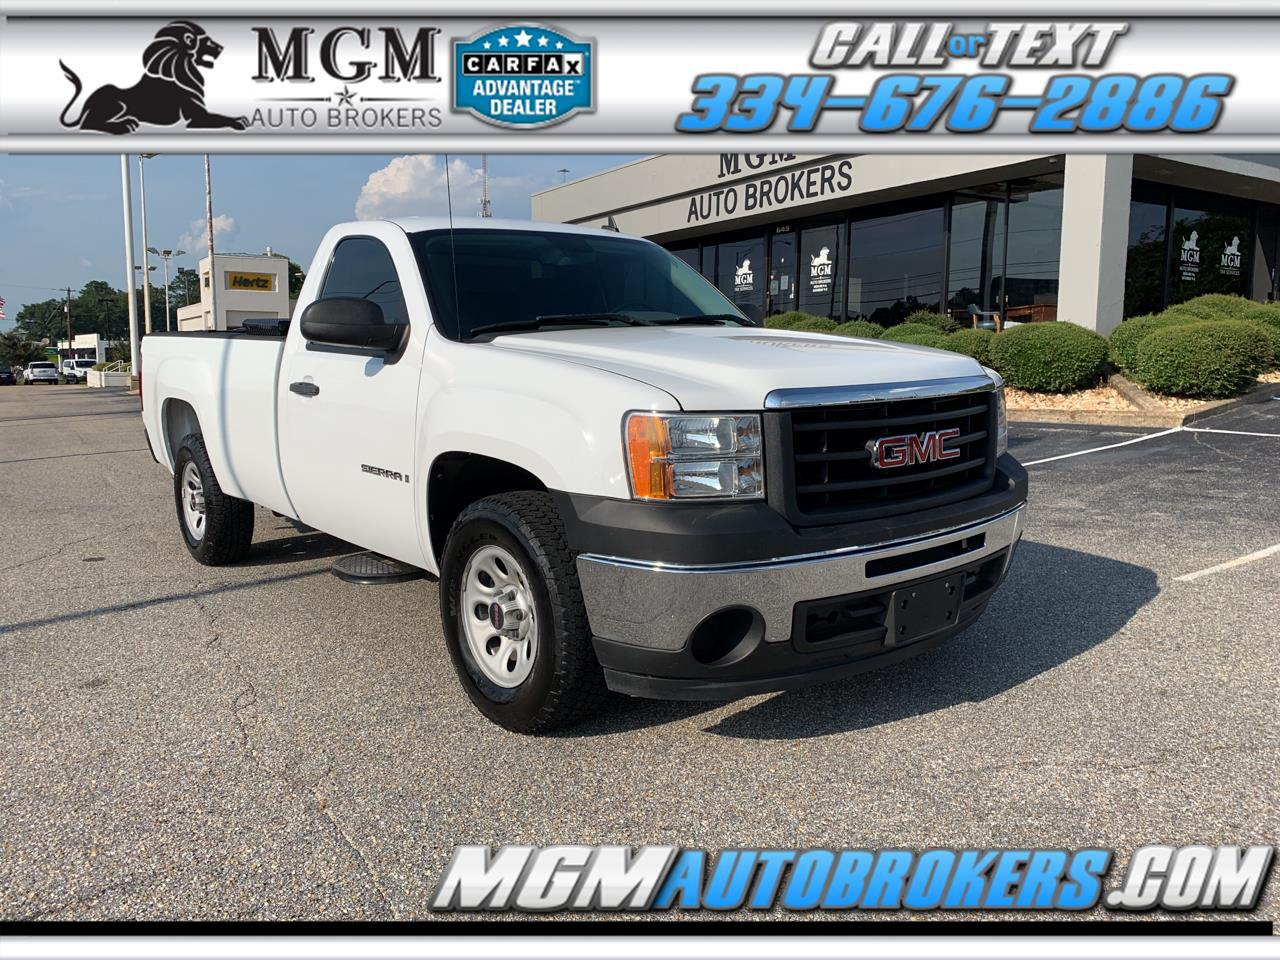 2009 GMC Sierra 1500 Reg. Cab 8-ft. Bed 2WD